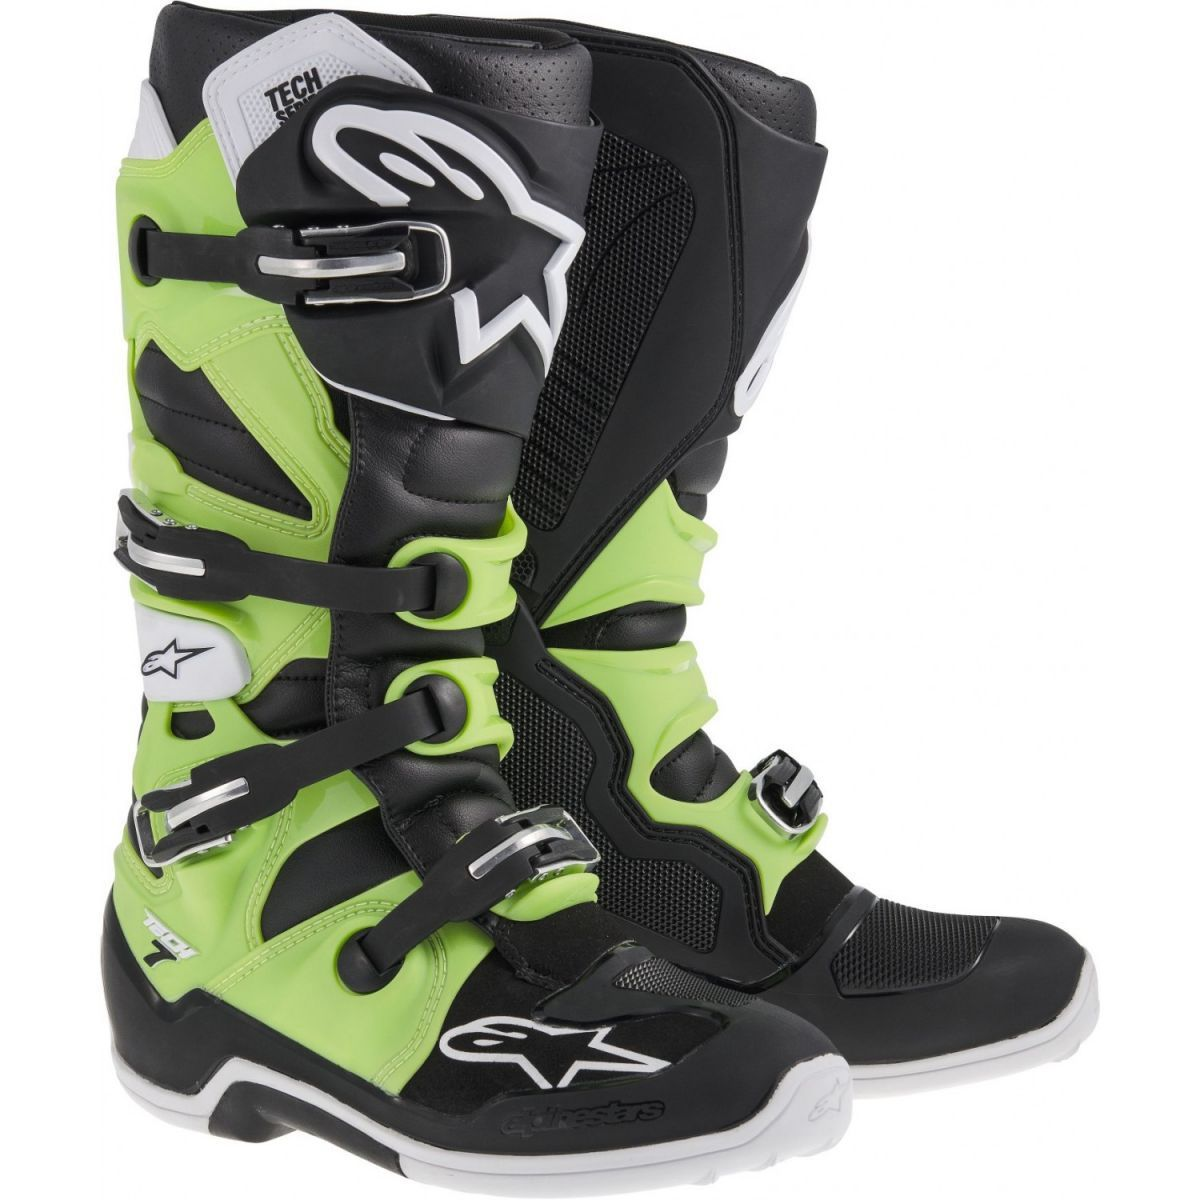 Bota Alpinestars Tech 7 2014